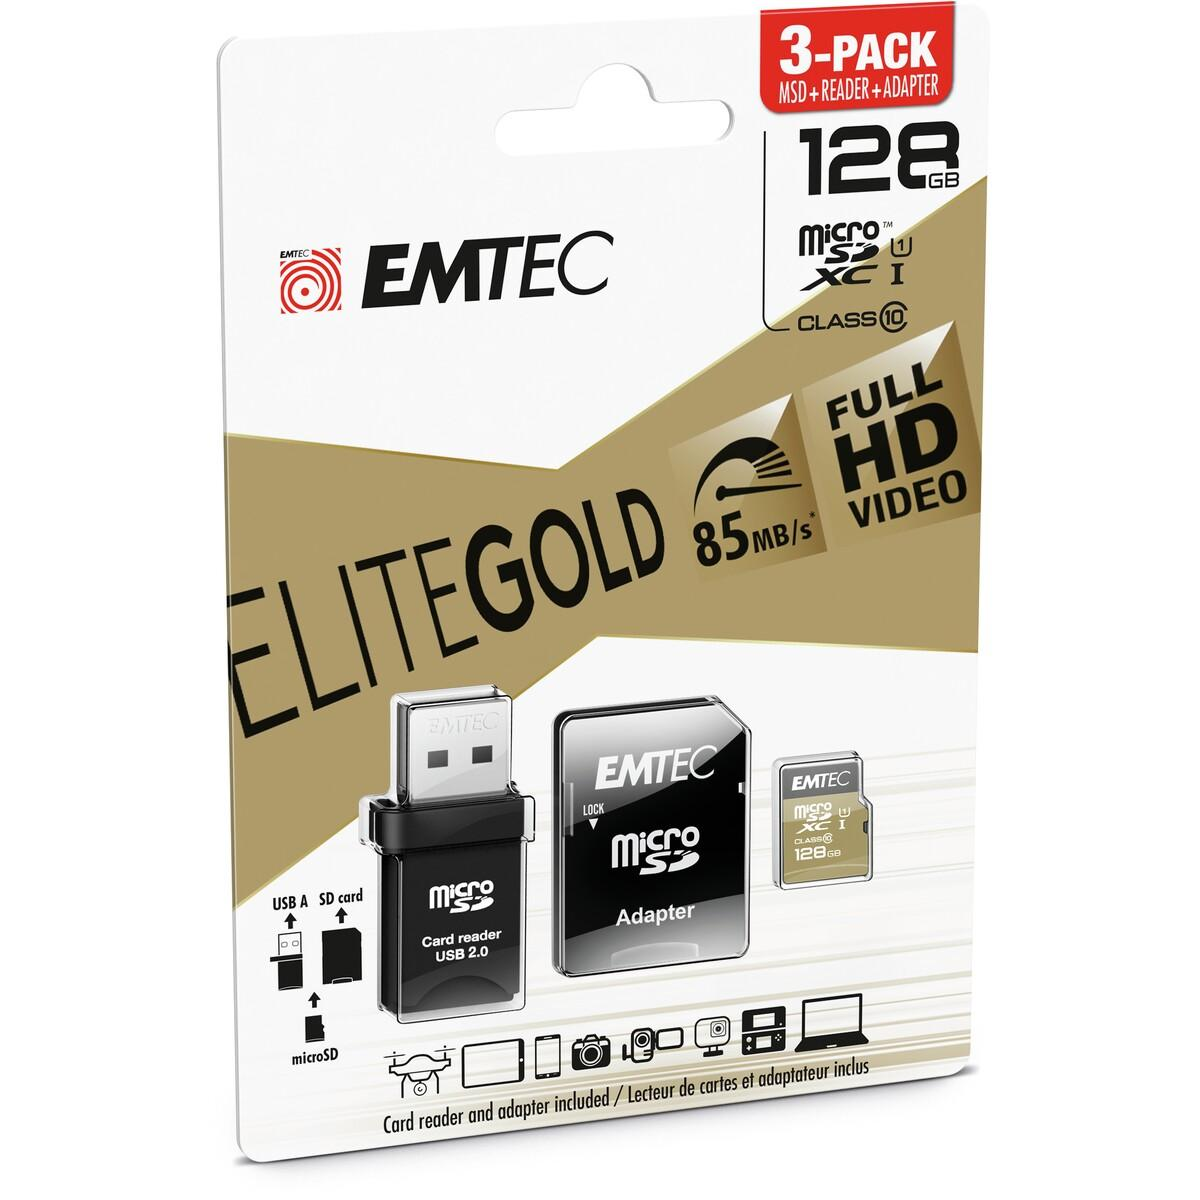 Emtec 128GB MicroSDXC Class 10 Gold With USB 2.0 Reader & Memory Card Adapter